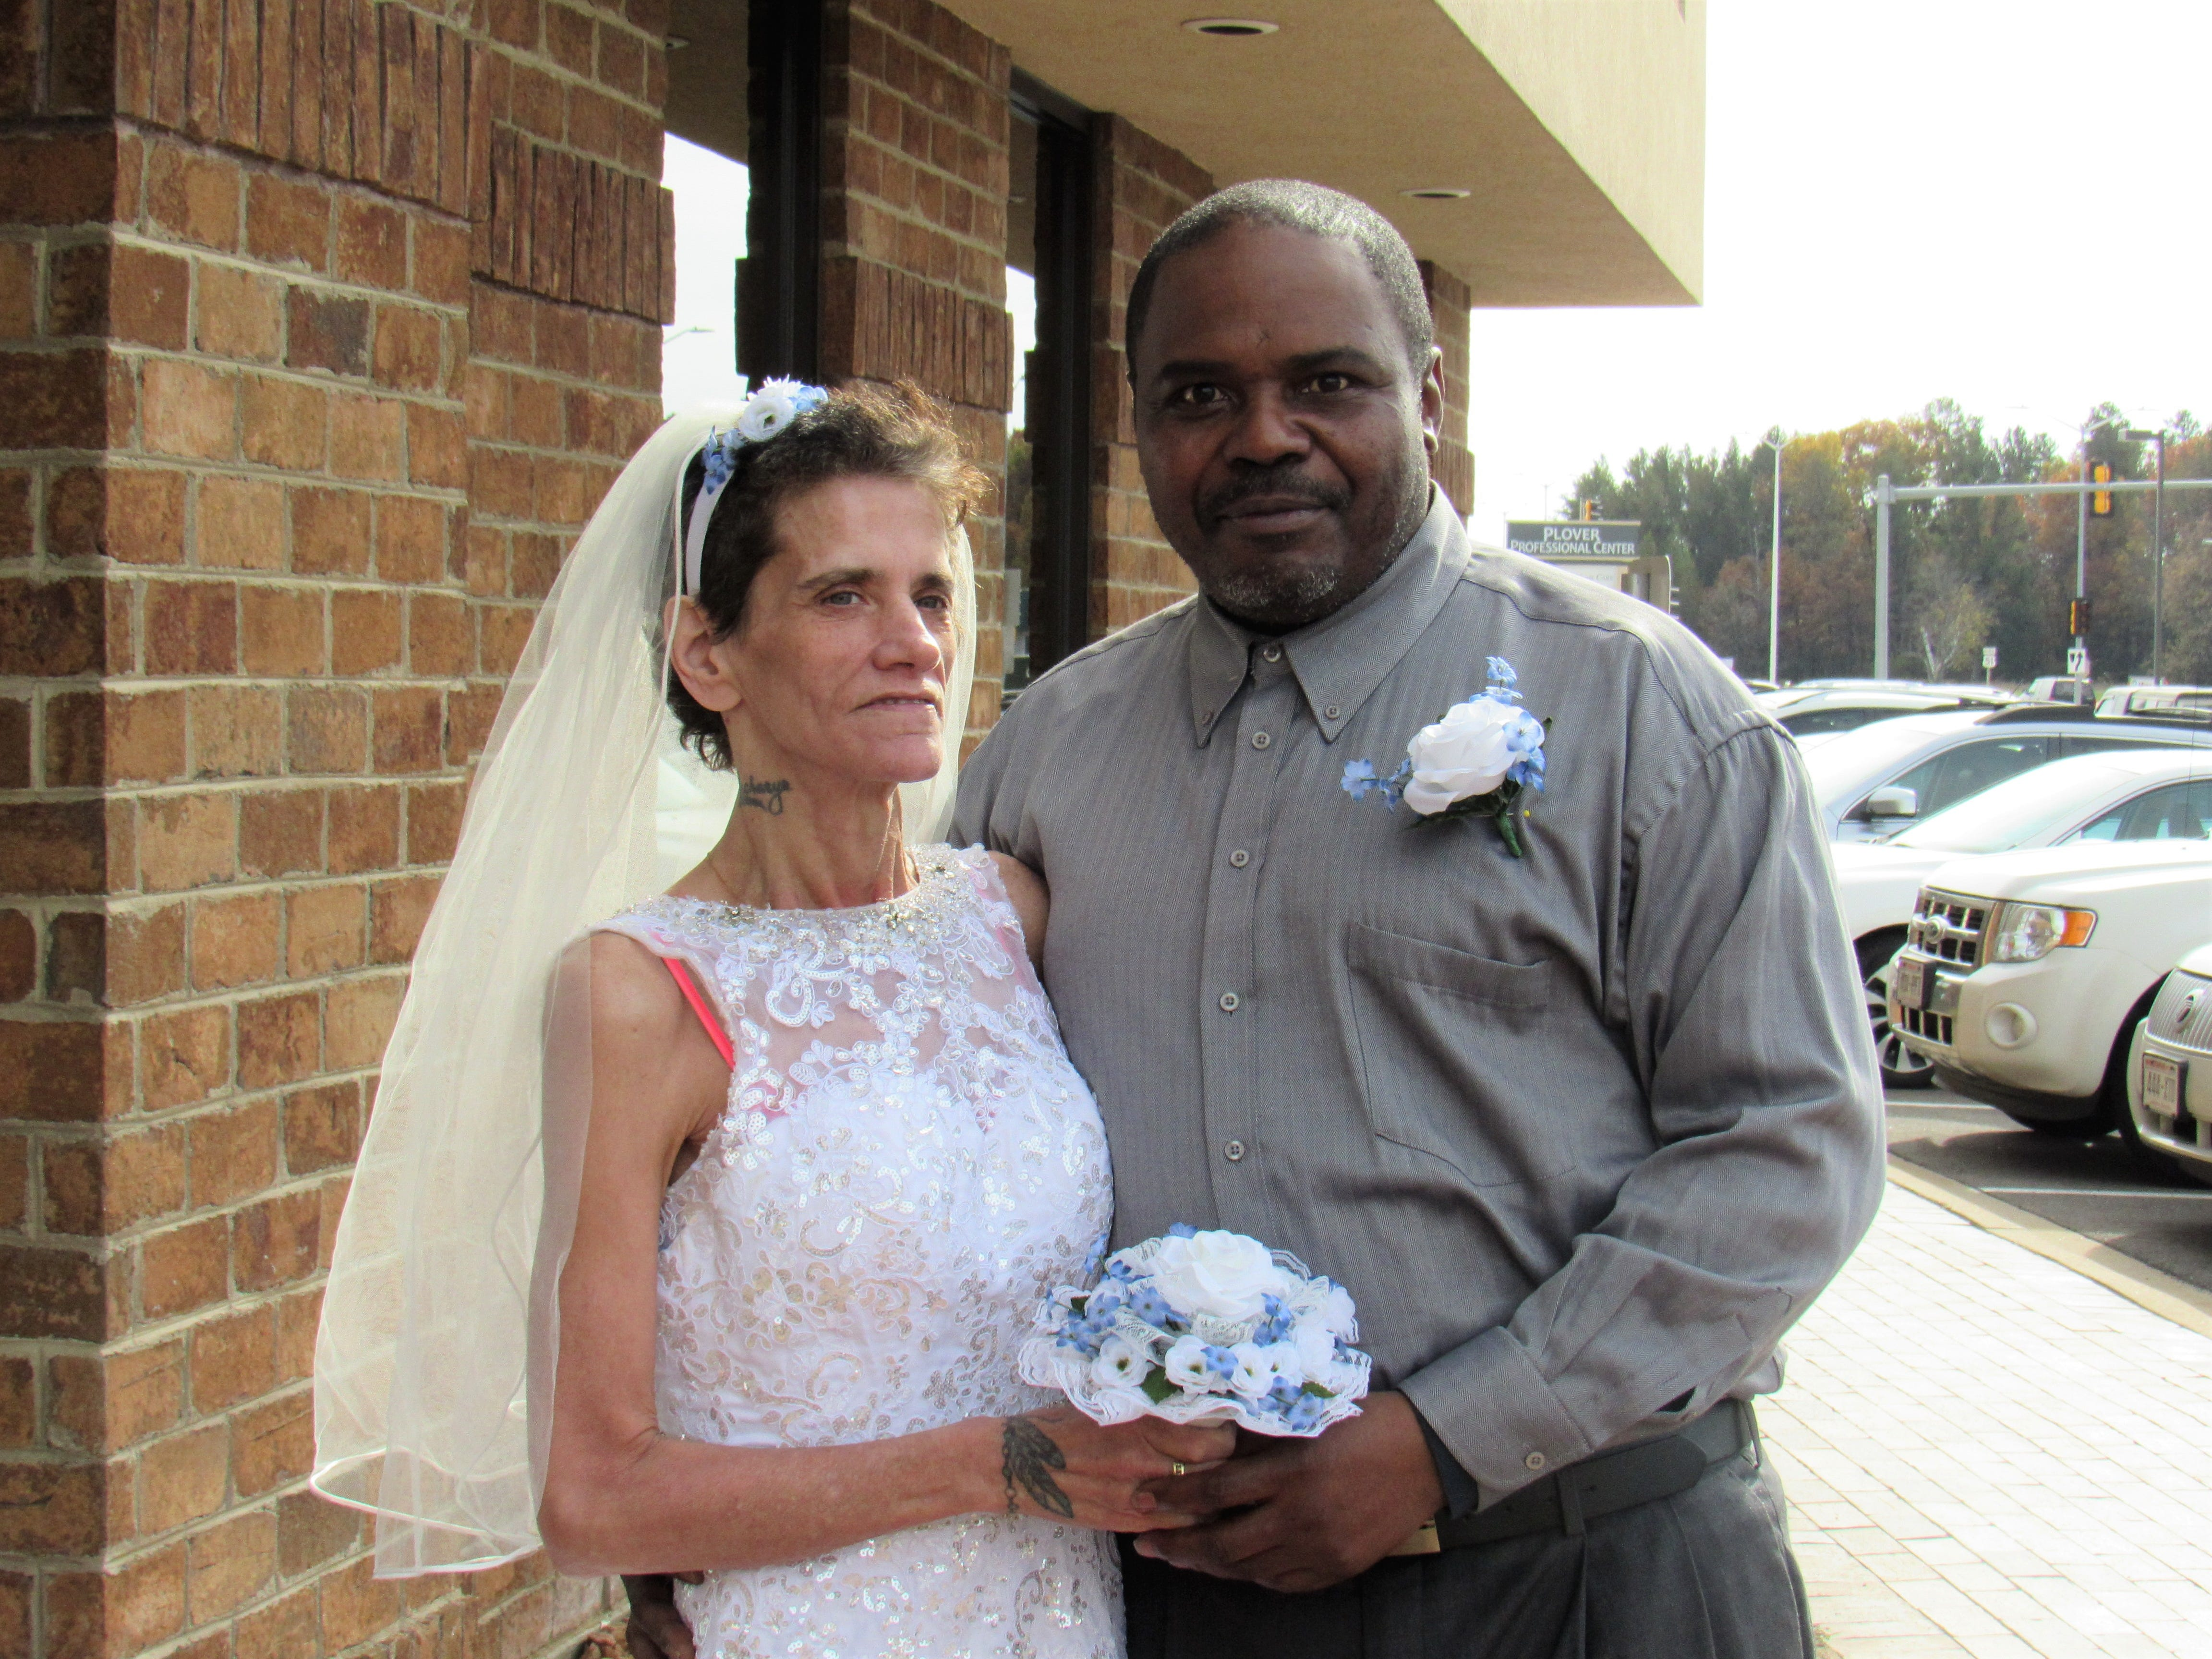 Lisa Fredrick and Shawn Ivy pose for photos after their wedding ceremony on Thursday, Oct. 25, 2018, outside the Ministry Home Care office in Plover.